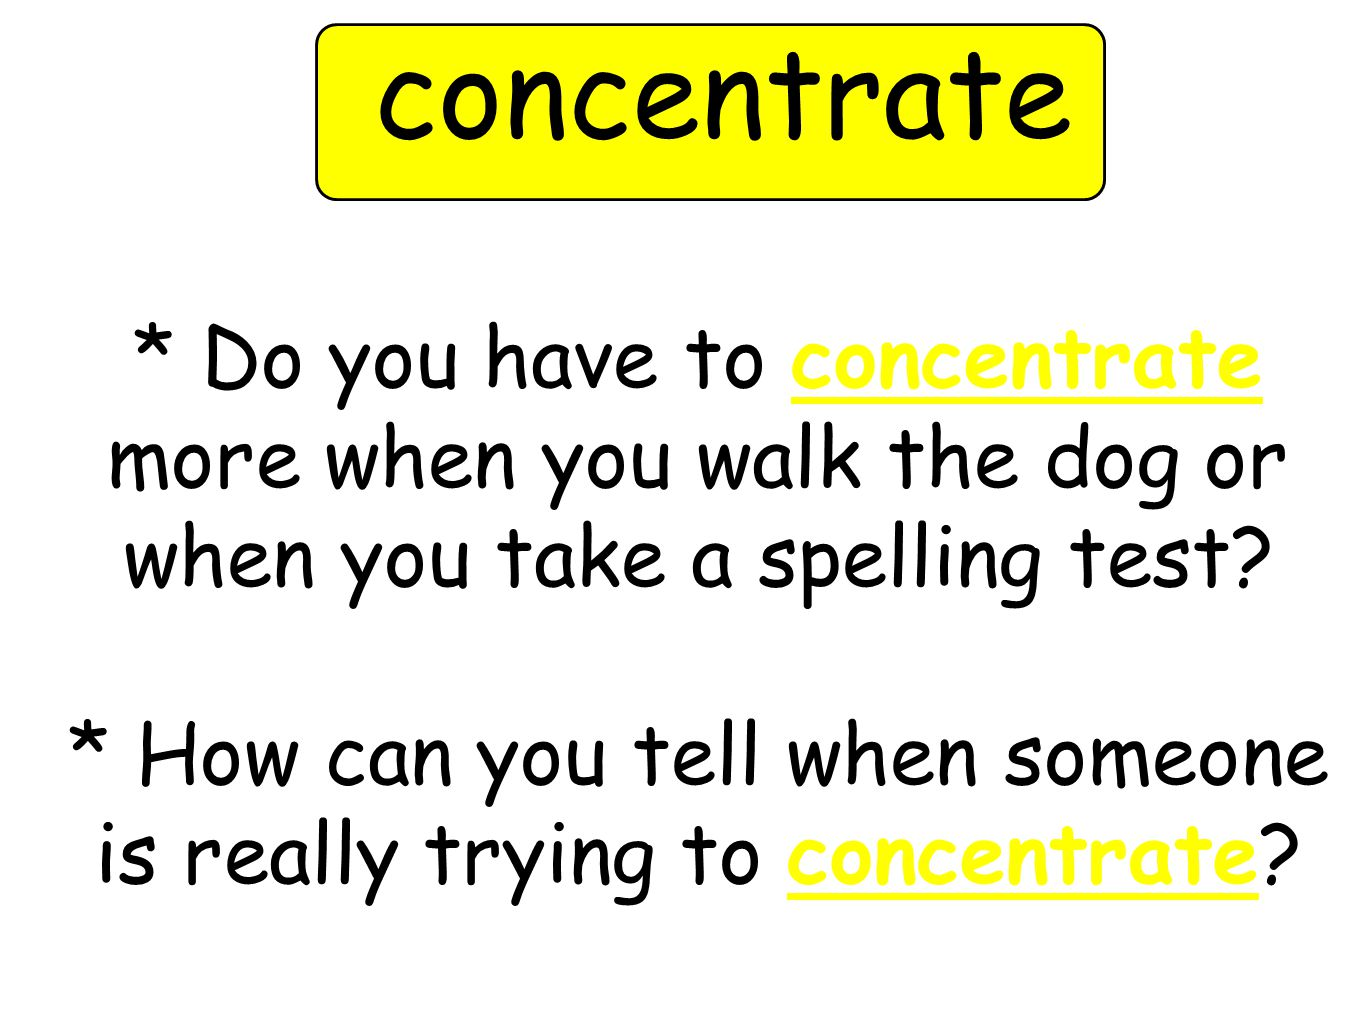 * Do you have to concentrate more when you walk the dog or when you take a spelling test.